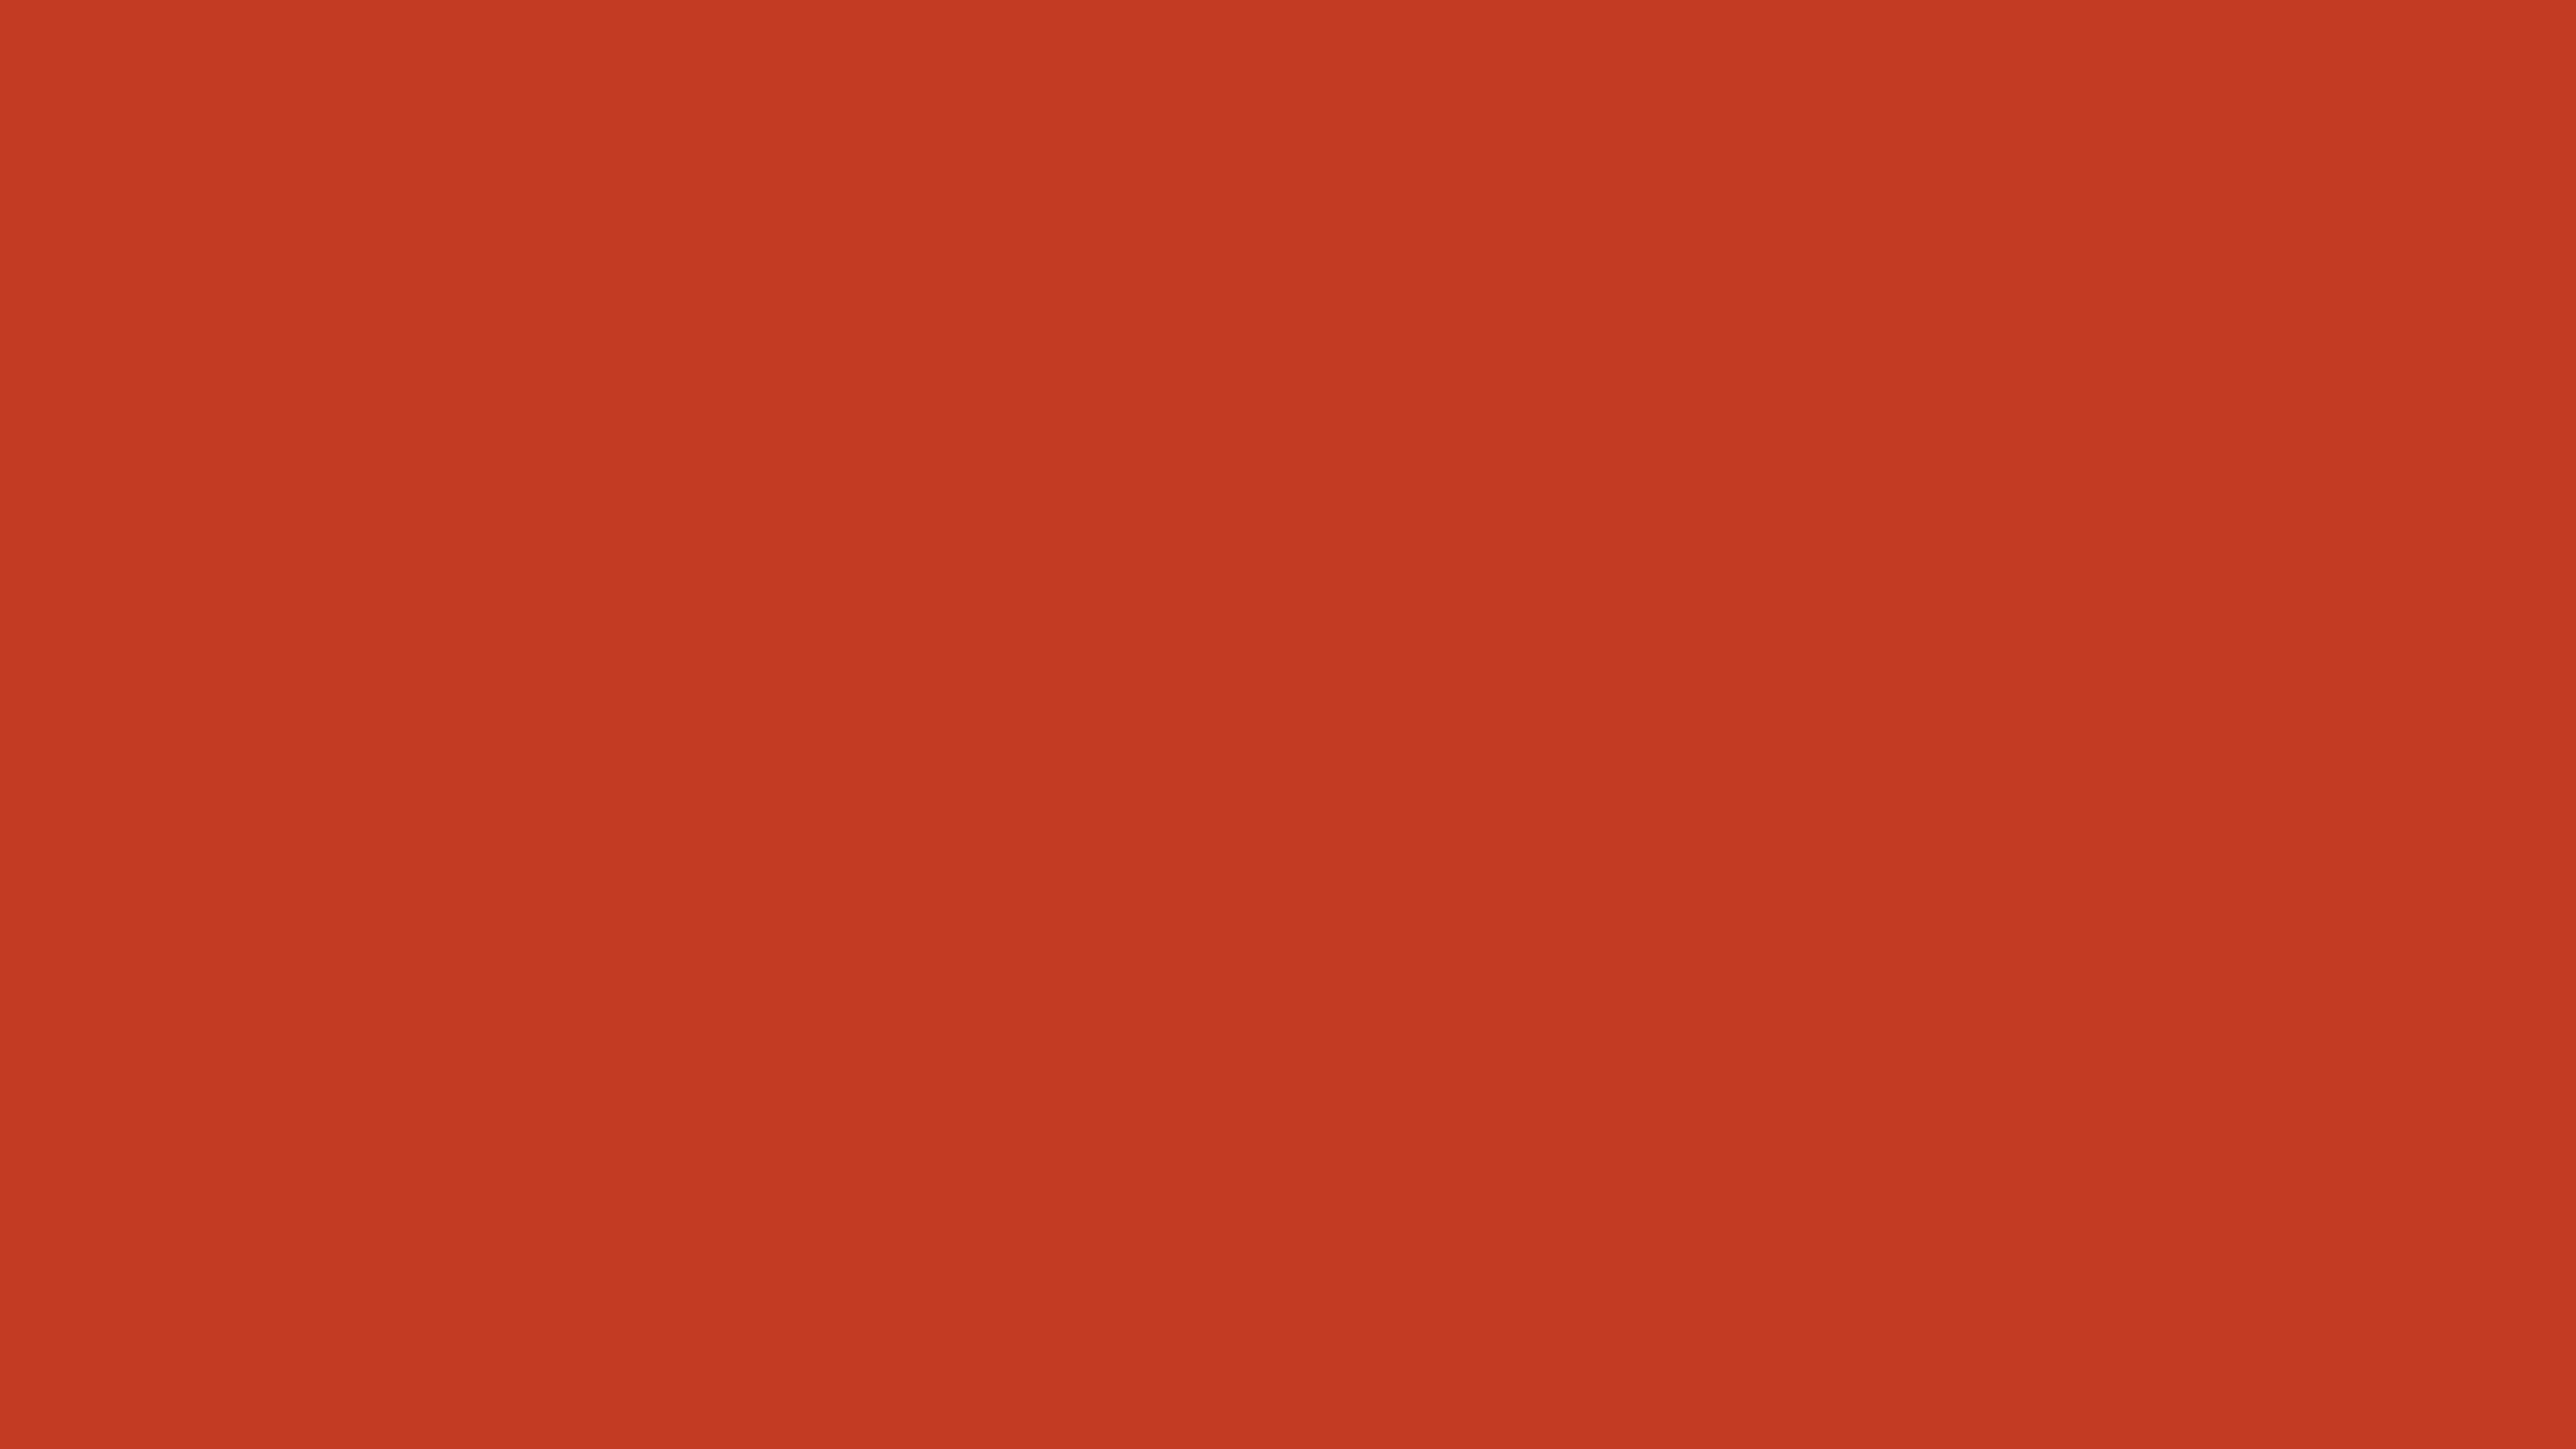 4096x2304 Dark Pastel Red Solid Color Background